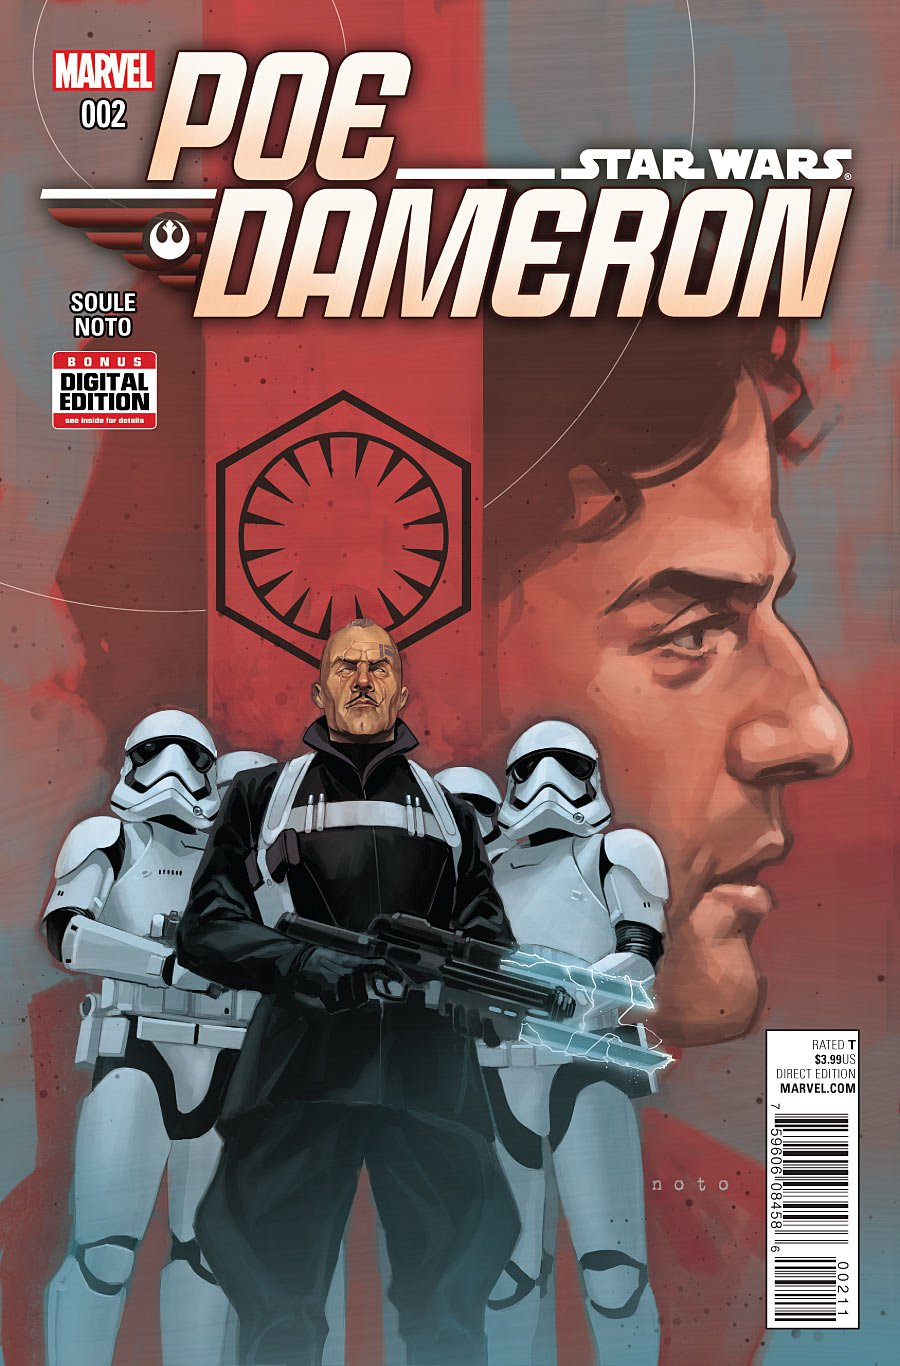 dameron mature singles Star wars destiny poe dameron swdawa029  destiny singles / star wars destiny poe dameron star wars destiny poe dameron sku: swdawa029 availability: out of stock.